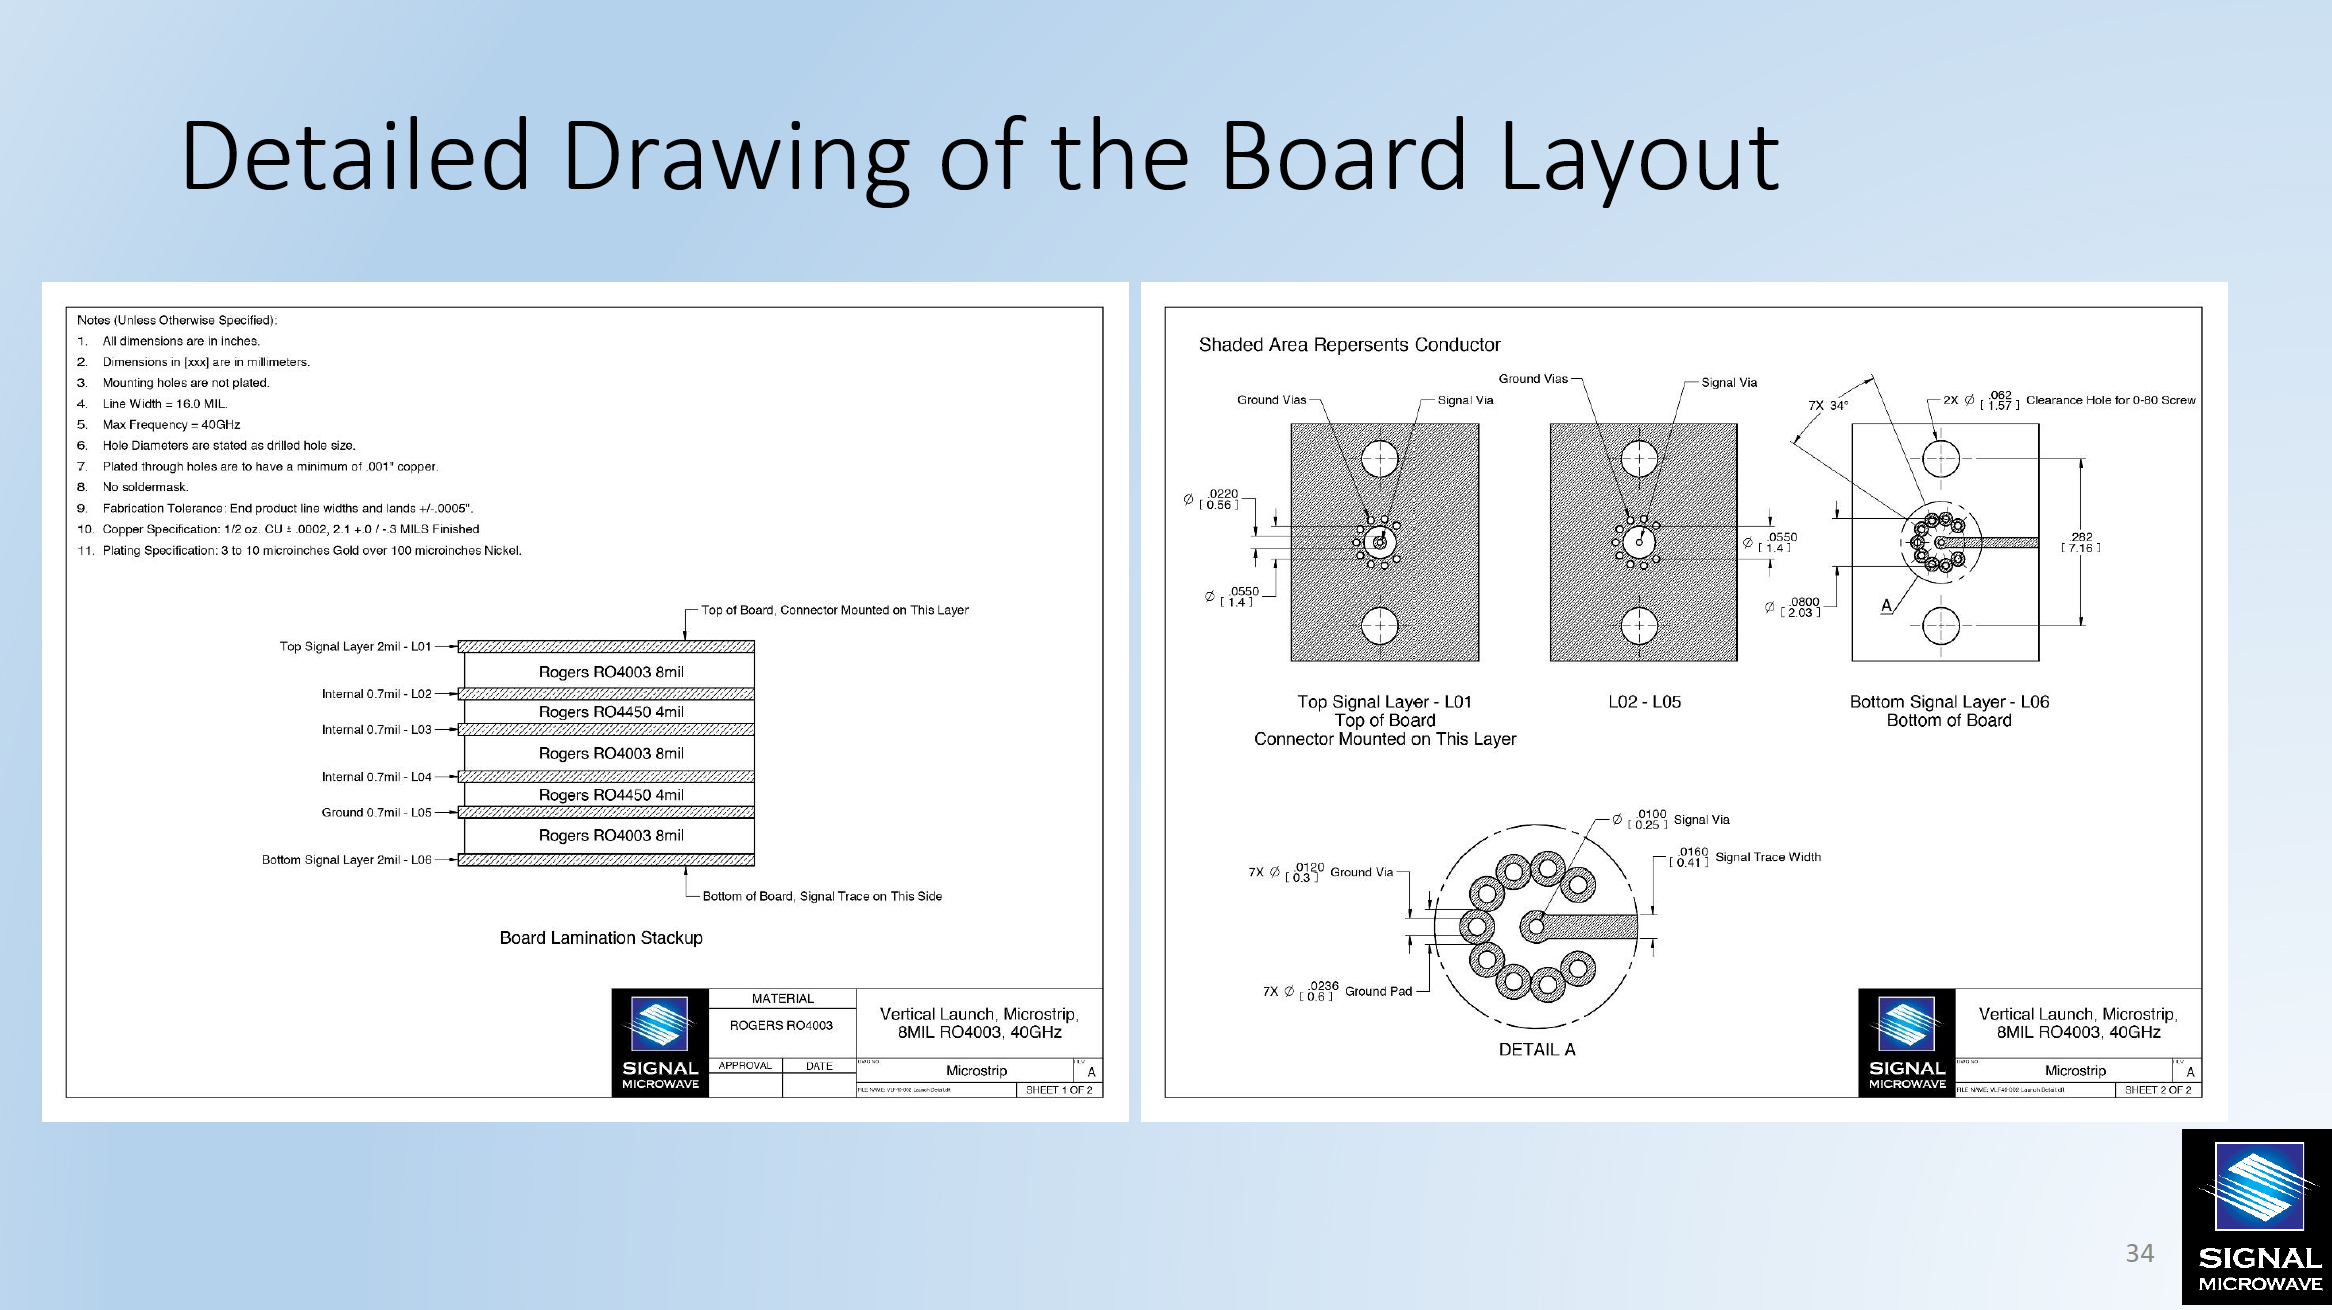 Detailed Drawing of the Board Layout